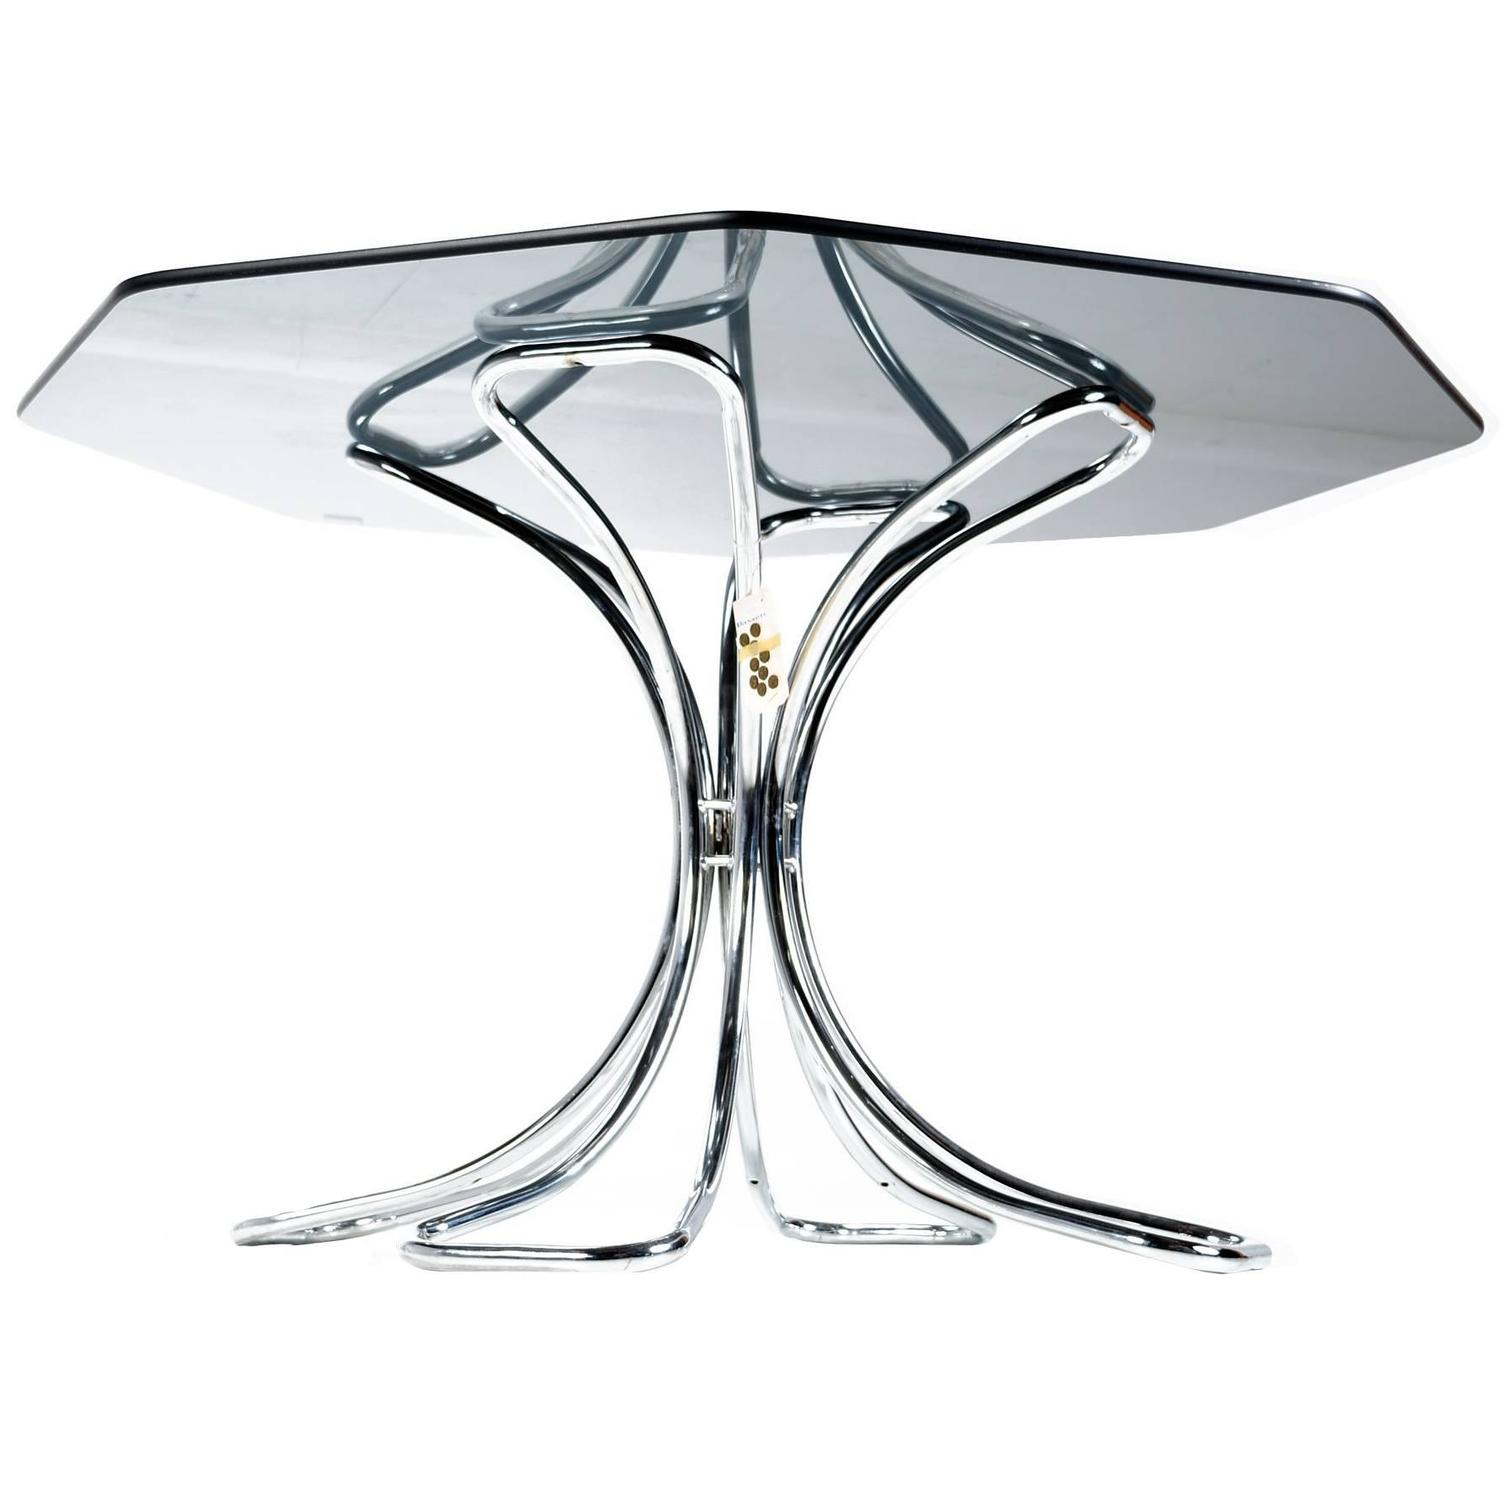 NOS Futura Chrome And Smoked Glass Octagon Dining Table, 1970s